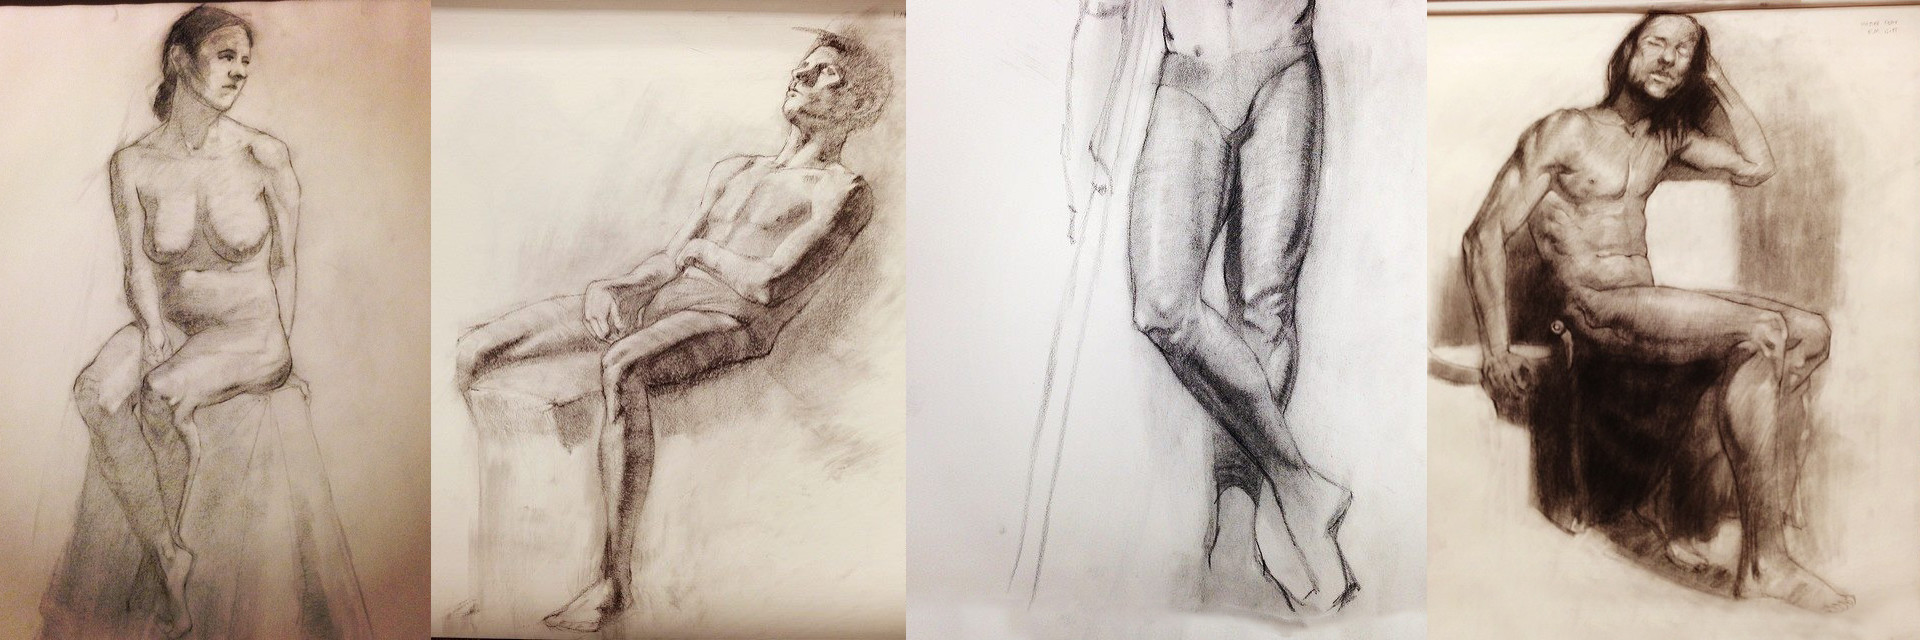 Austin balaich longer figure drawings